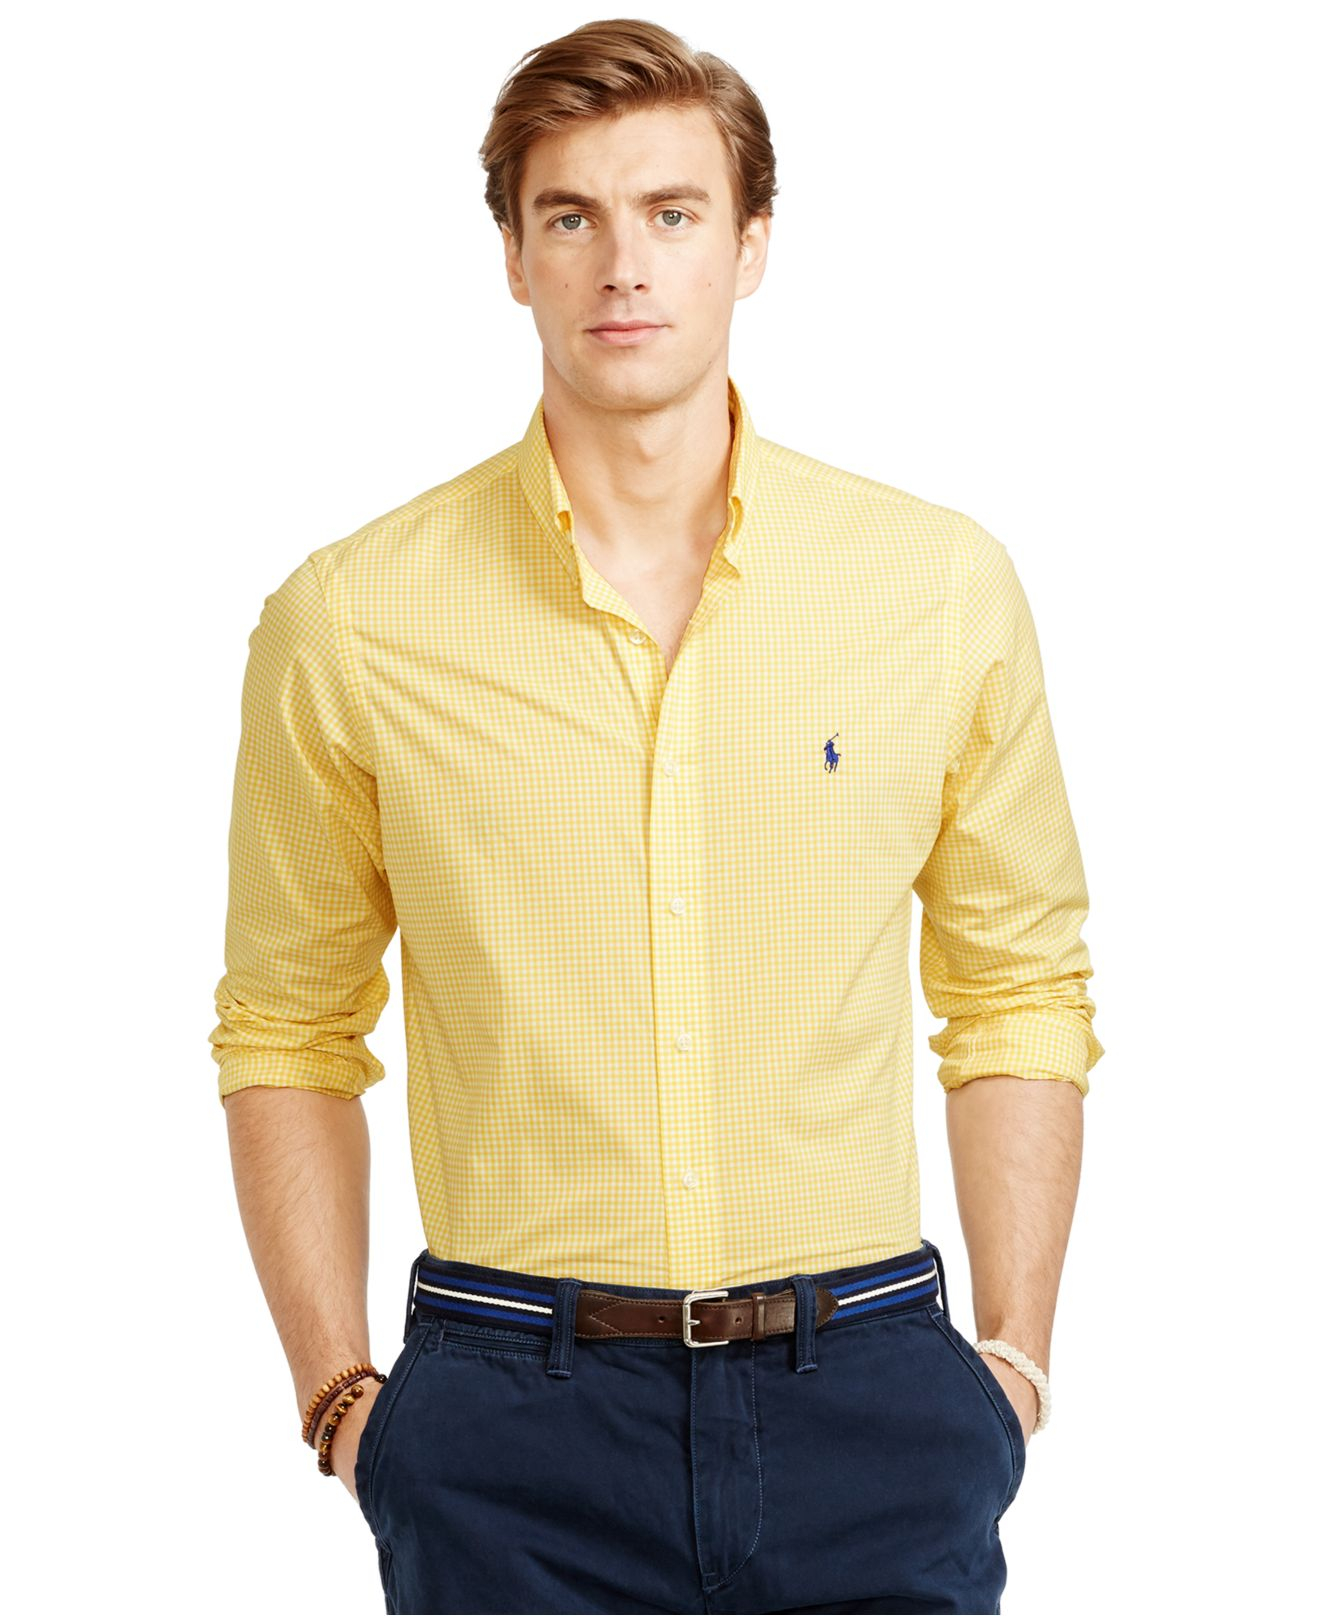 FREE Shipping & FREE Returns on Polo Ralph Lauren Men. Shop now! Pick Up in Store Available.